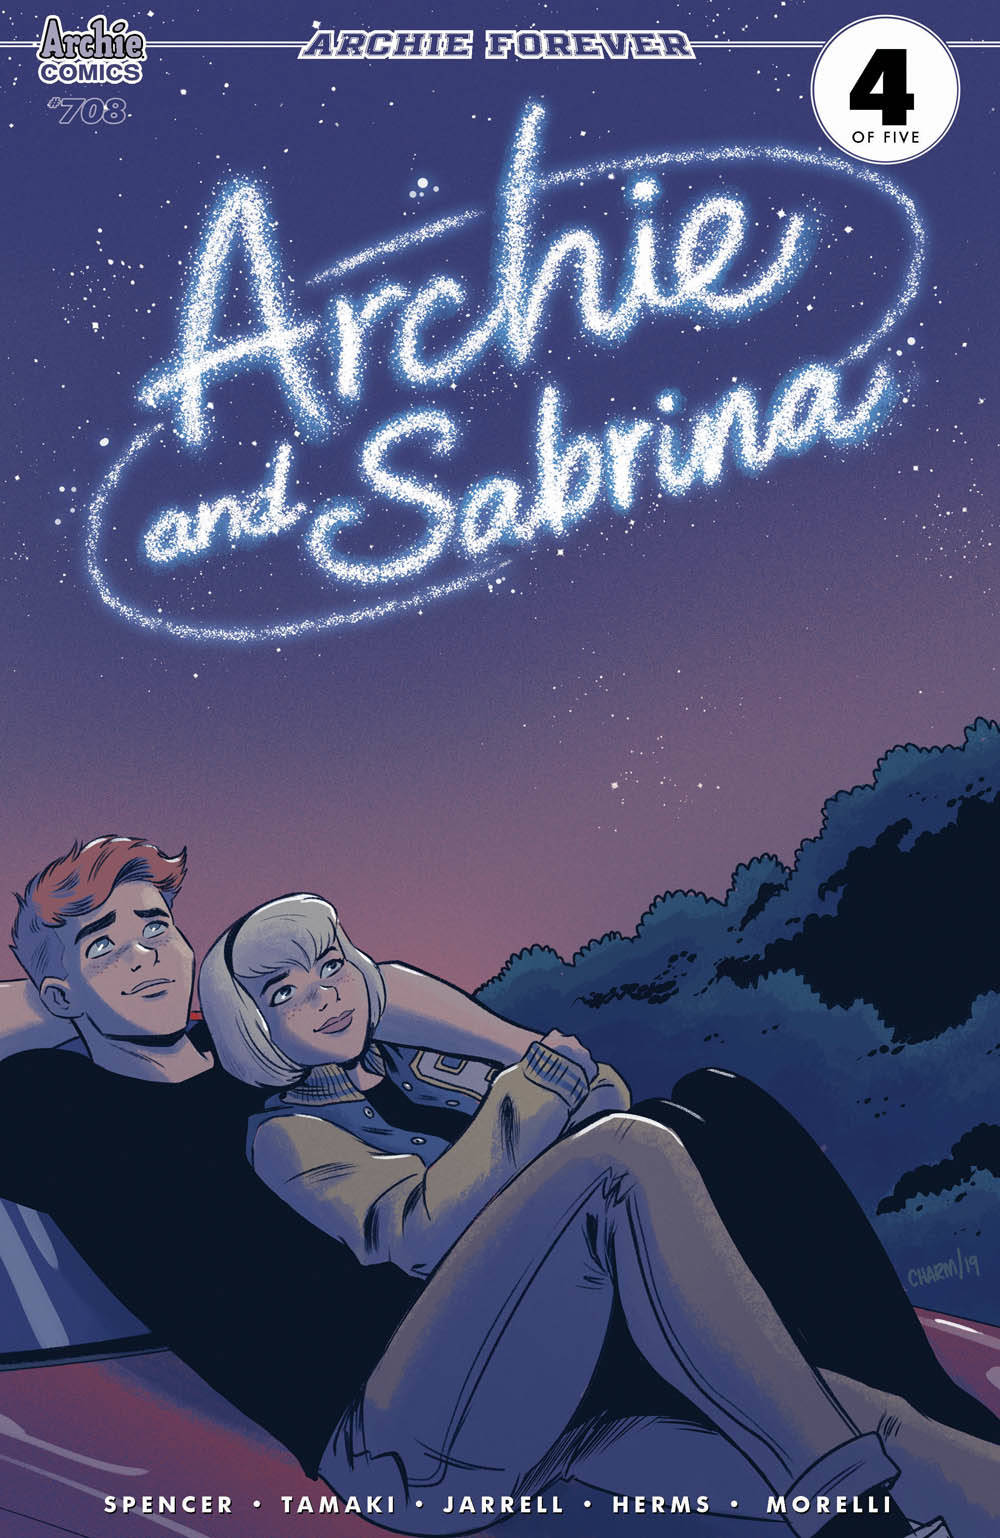 Archie (Vol. 2)  #708 Cover A